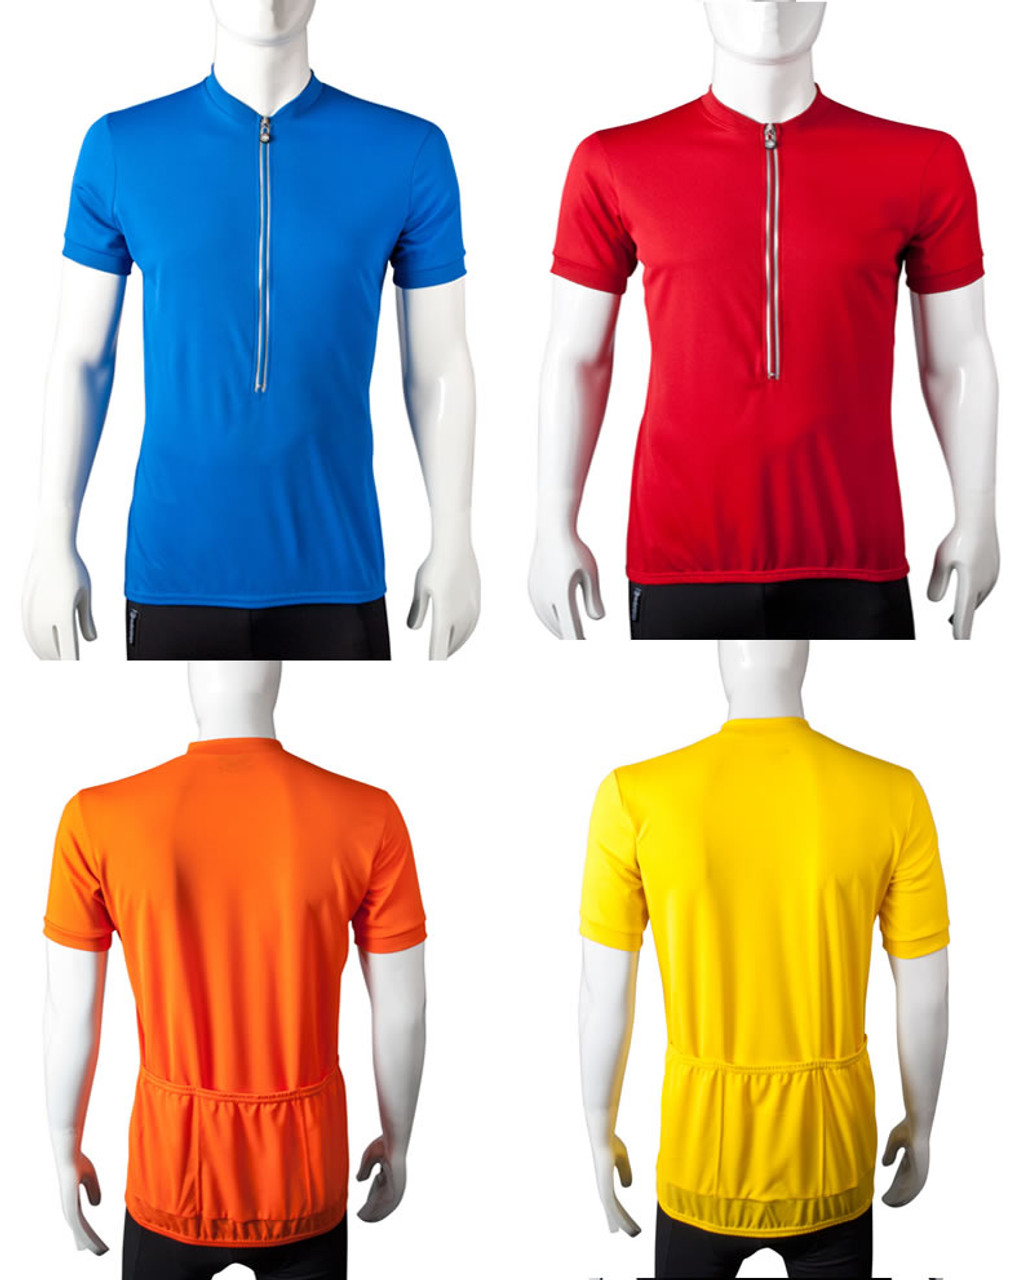 34156ee2d Tall Men s Bicycling Jersey with Extra Long Length Sleeves and Torso